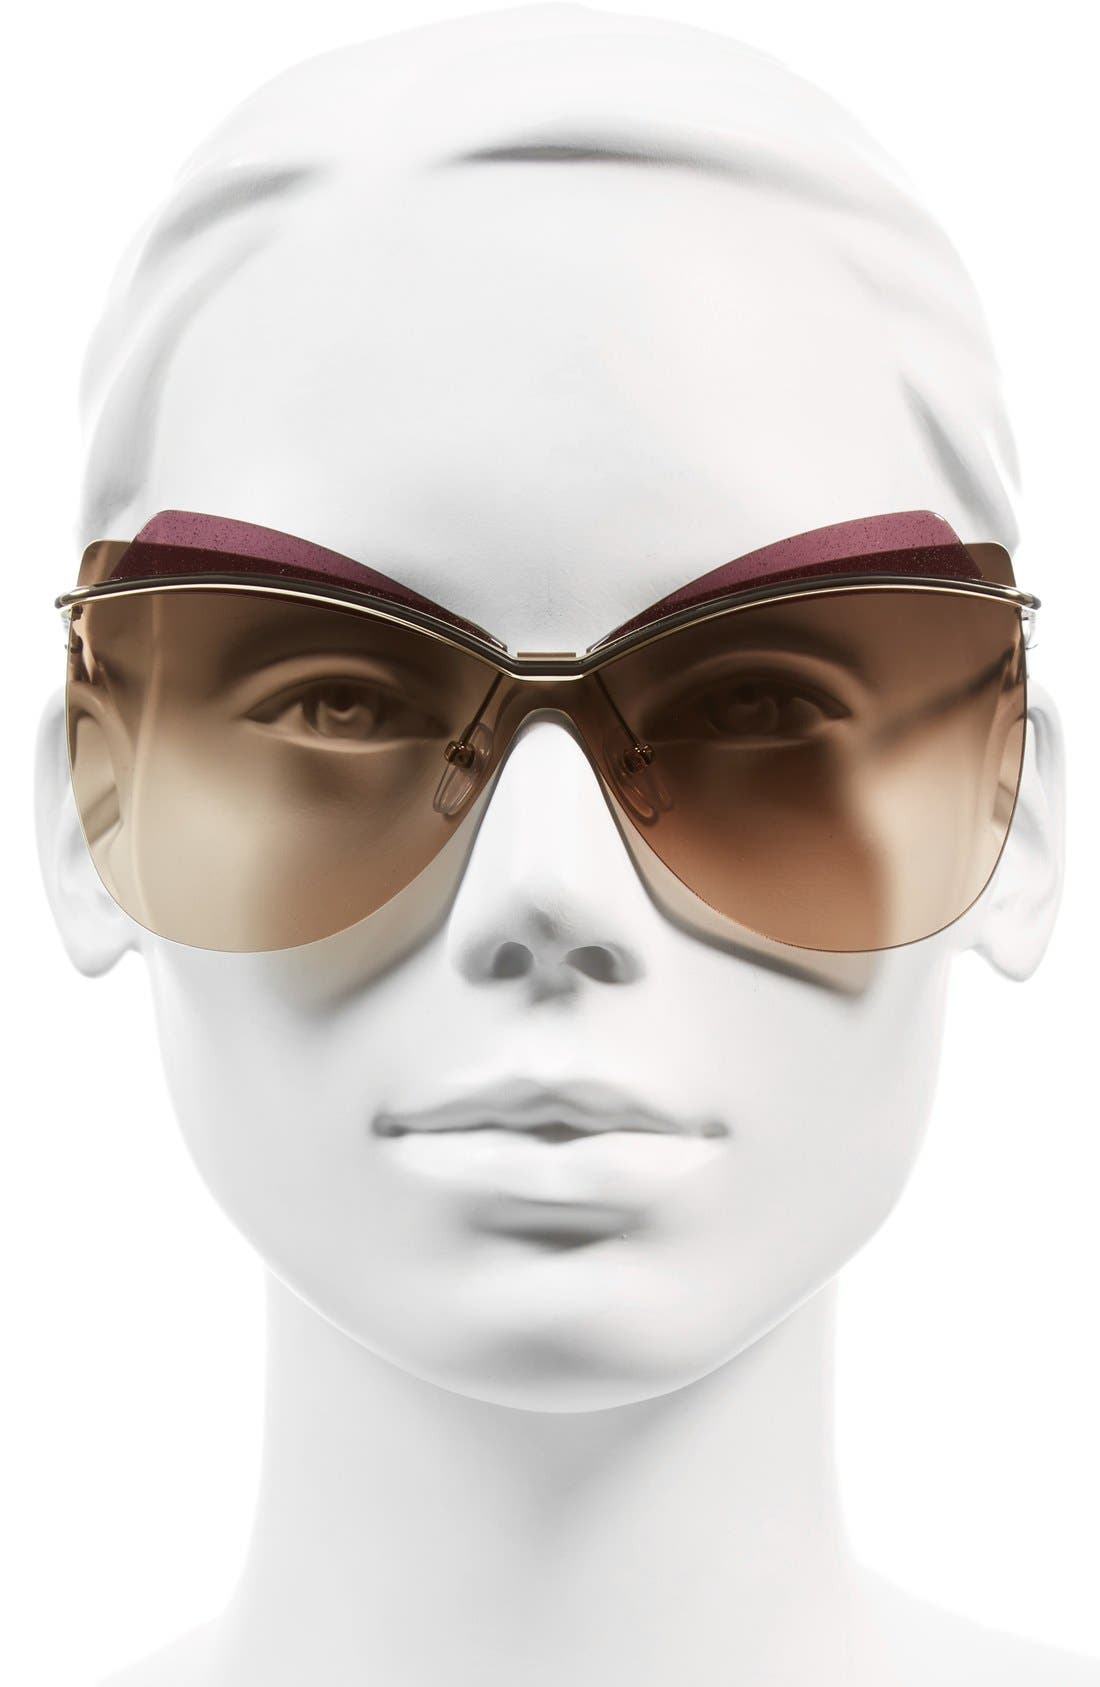 67mm Sunglasses,                             Alternate thumbnail 2, color,                             711